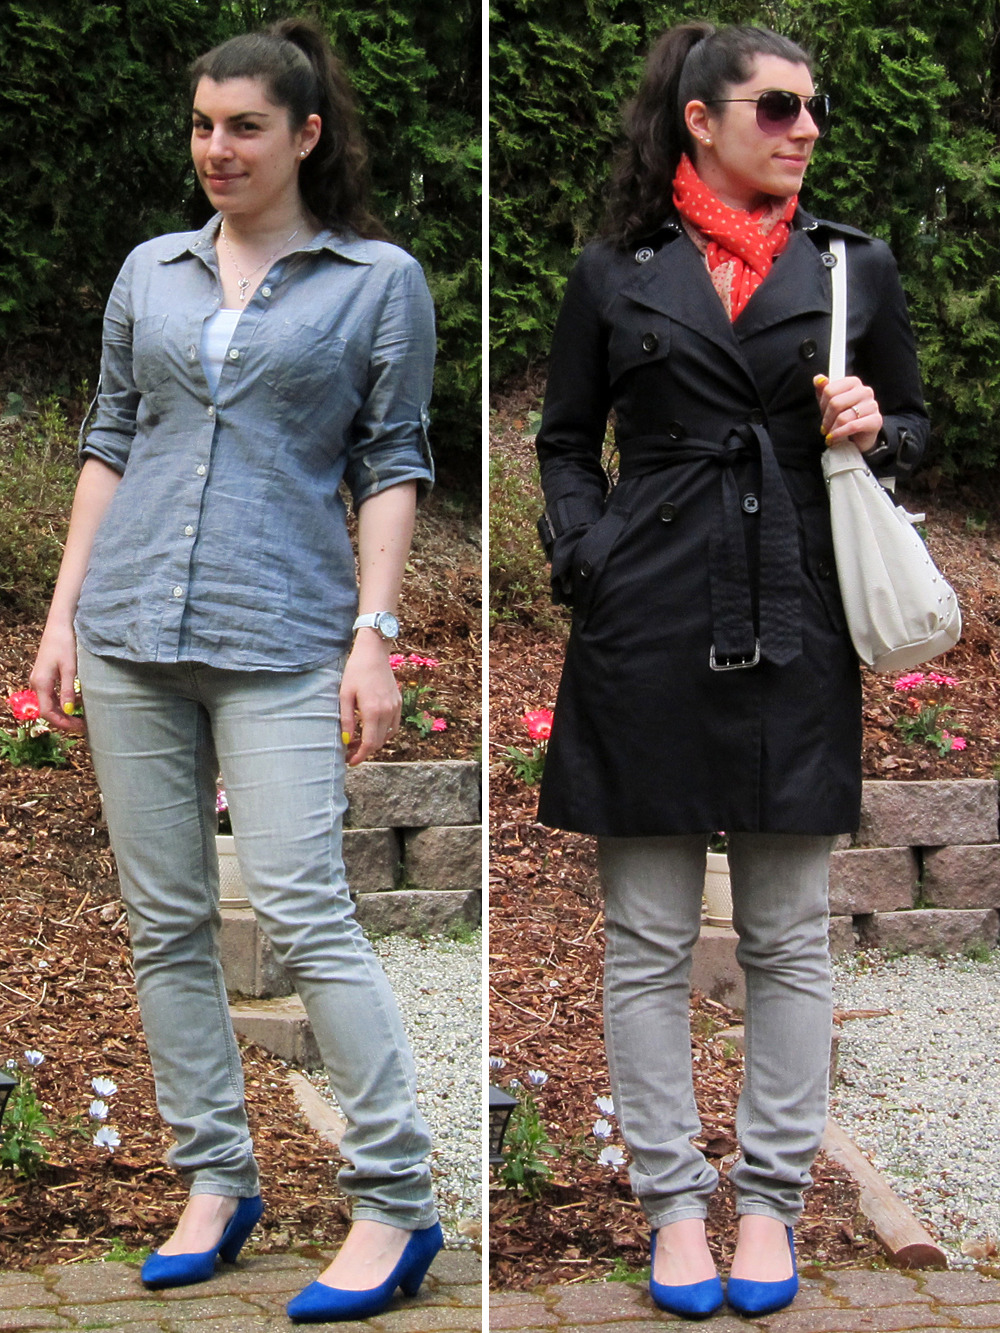 "04.18.2012 [wed] Worn to: work Blouse, jeans, scarf: TargetHeels: Halogen ""Payton"" (via Nordstrom)Pearl earrings: anniversary giftNecklace: giftWatch: Timex (via Target)Trench: Banana Republic (via YLF swap)Purse: Linea Pelle for TargetShades: Forever 21 Thoughts:As much as I'd like to be on Team Wear, I'm not quite there. I don't really ""save"" my clothing for special occasions or anything, I just usually like to wait a while to let an item percolate in my brain before I cut the tags. I did this with most of my new purchases for the season. However! These lovely new pumps (80s cone-heeled bright bright cobalt goodness!) did NOT sit in wait as long as most of my purchases, just a couple weeks while I waffled on which size to keep. They are remarkably comfortable, and I'm reallllyyyyy hoping that Nordstrom will reissue these in a few other shades (they had a bright pink and leopard, neither of which appealed to me). Houndstooth gets my top vote. Behind the outfit:Today is my husband's birthday so I decided to wear something simple, formed around pieces I know he likes, the chambray shirt and the gray jeans, and kept the jewelry small and sentimental. I initially had on my gray houndstooth flats since my husband bats for Team Flats; I know he'd have preferred the flats, but I just couldn't resist switching to the bright blue pumps! Plus they're new! I'm rationalizing that the cobalt ""goes"" with the blue chambray, so… it's all still very matchy-matchy, so that keeps it simple still, right?? ^^ Today was back to being cold enough for a coat, so I chose my coral scarf to add an additional bit of brightness to the outerwear. In retrospect, I should have worn a different purse; normally I like the high contrast, but with the two brights (coral scarf, cobalt heels) it felt a bit off. If I did this outfit over again, I'd instead go with my gold mini-satchel which would also pick up nicely on my bright yellow nails."